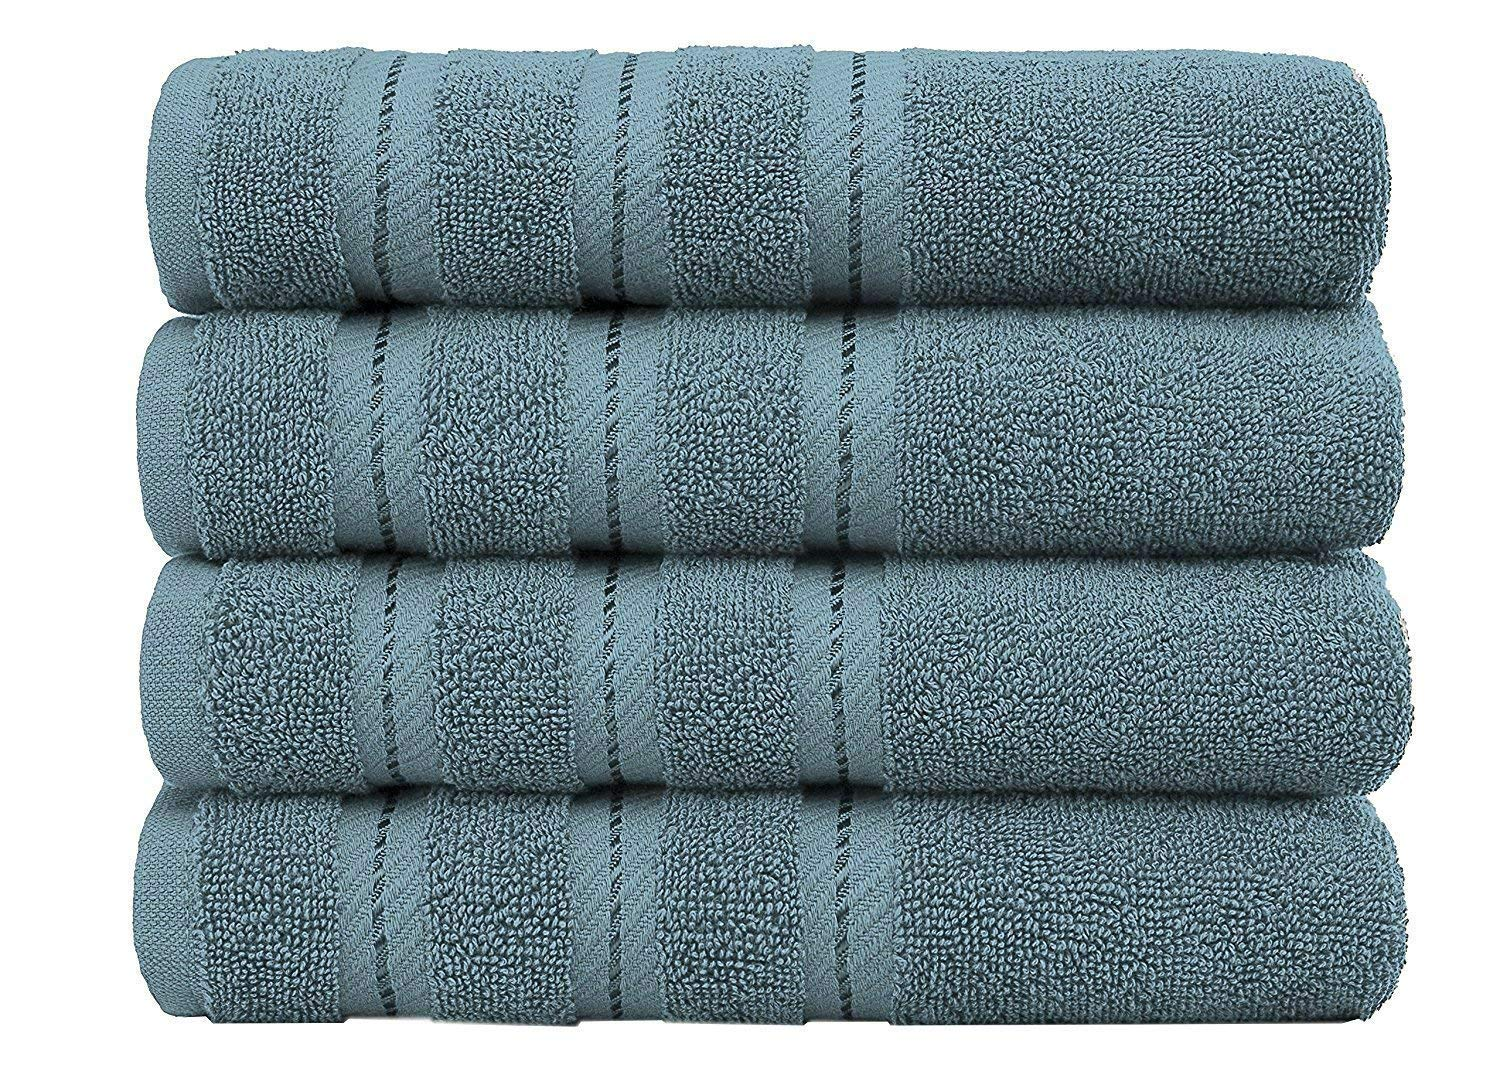 Luxury Hotel and Spa Quality, 100% Ring Spun Genuine Cotton, 16x30 Inches 4-Piece Turkish Hand Towel Set for Maximum Softness and Absorbency, Dry Quickly by American Soft Linen, Colonial Blue